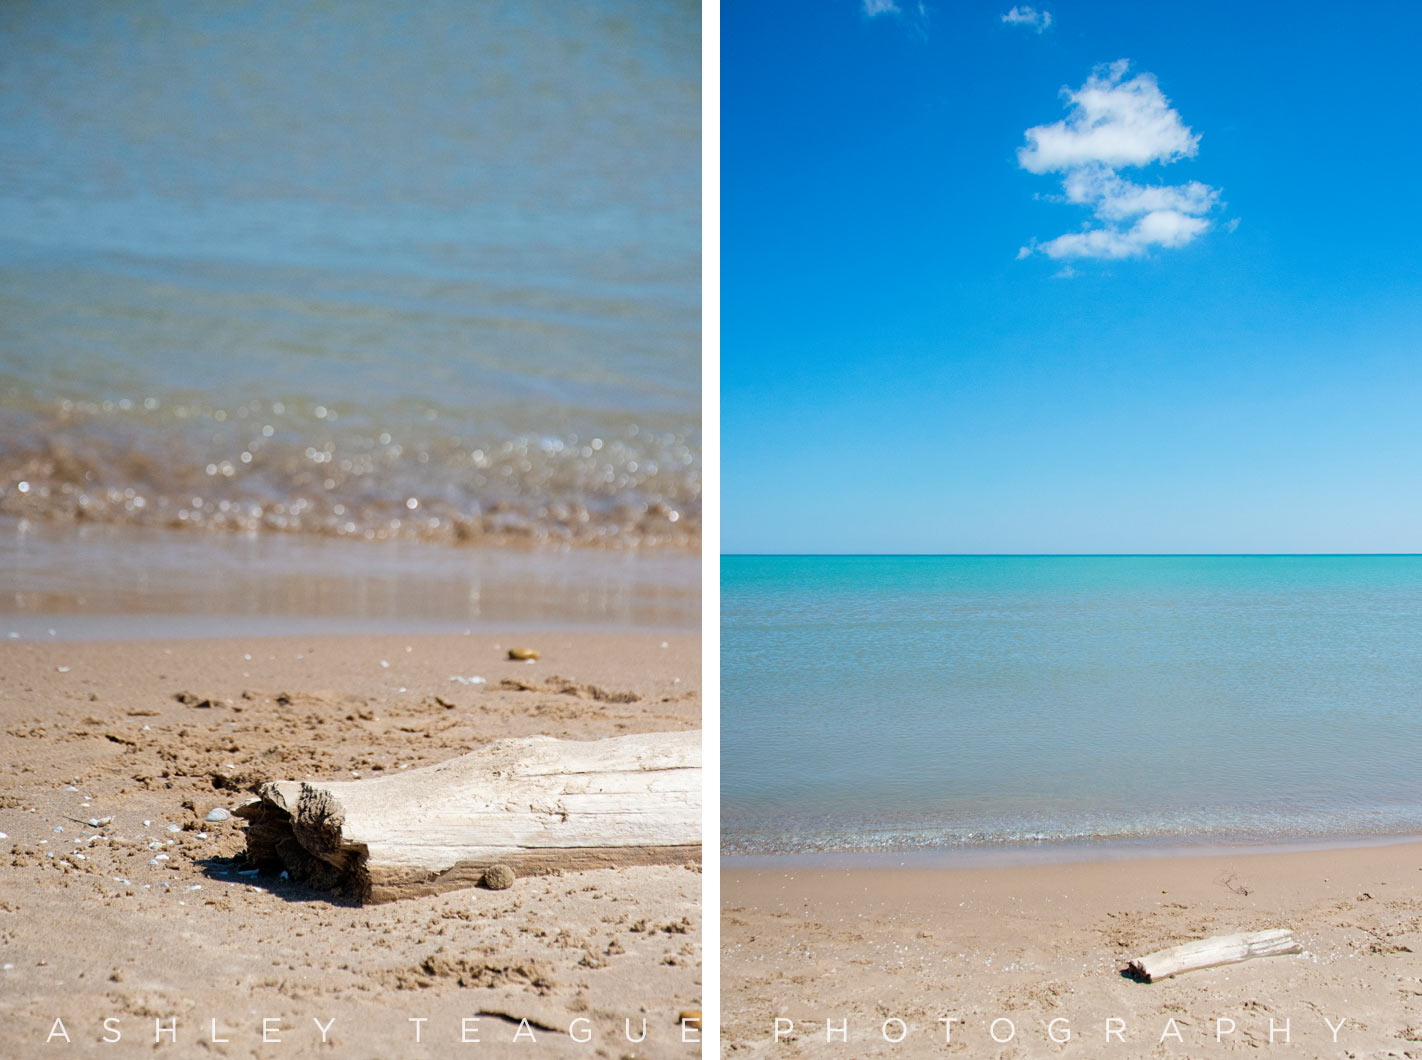 Foster Beach and Lake Michigan in Chicago, Illinois